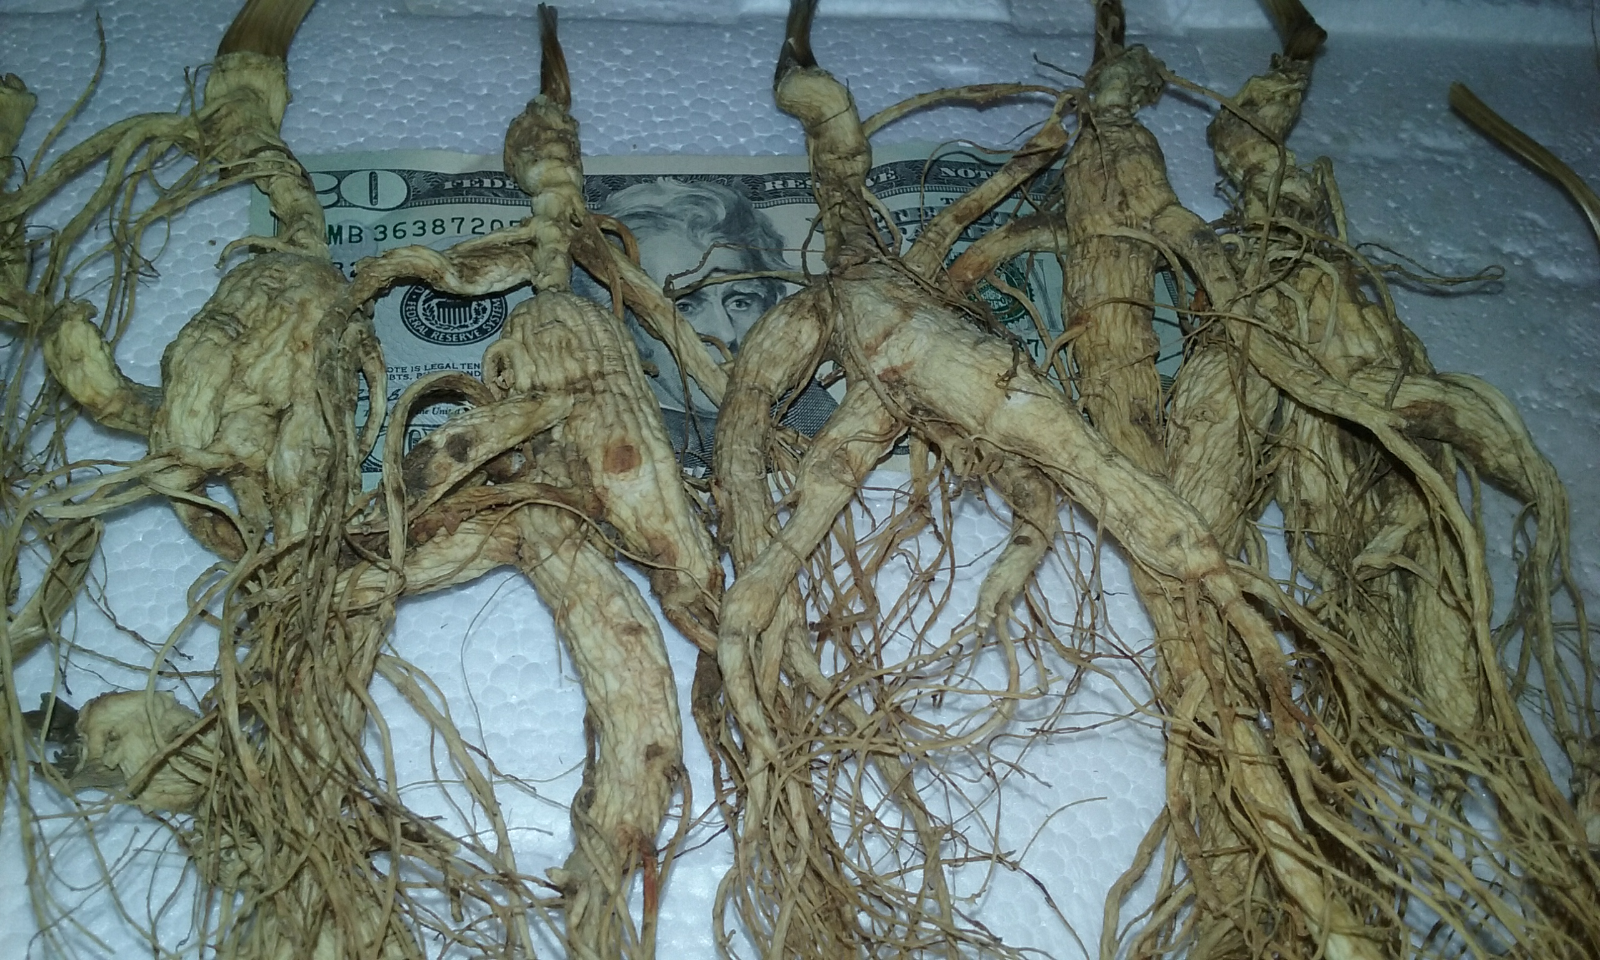 ALL BIG WILD WISCONSIN GINSENG ROOT 15-50 YEAR LONG NECK 448 GRAMS SUPER STRONG